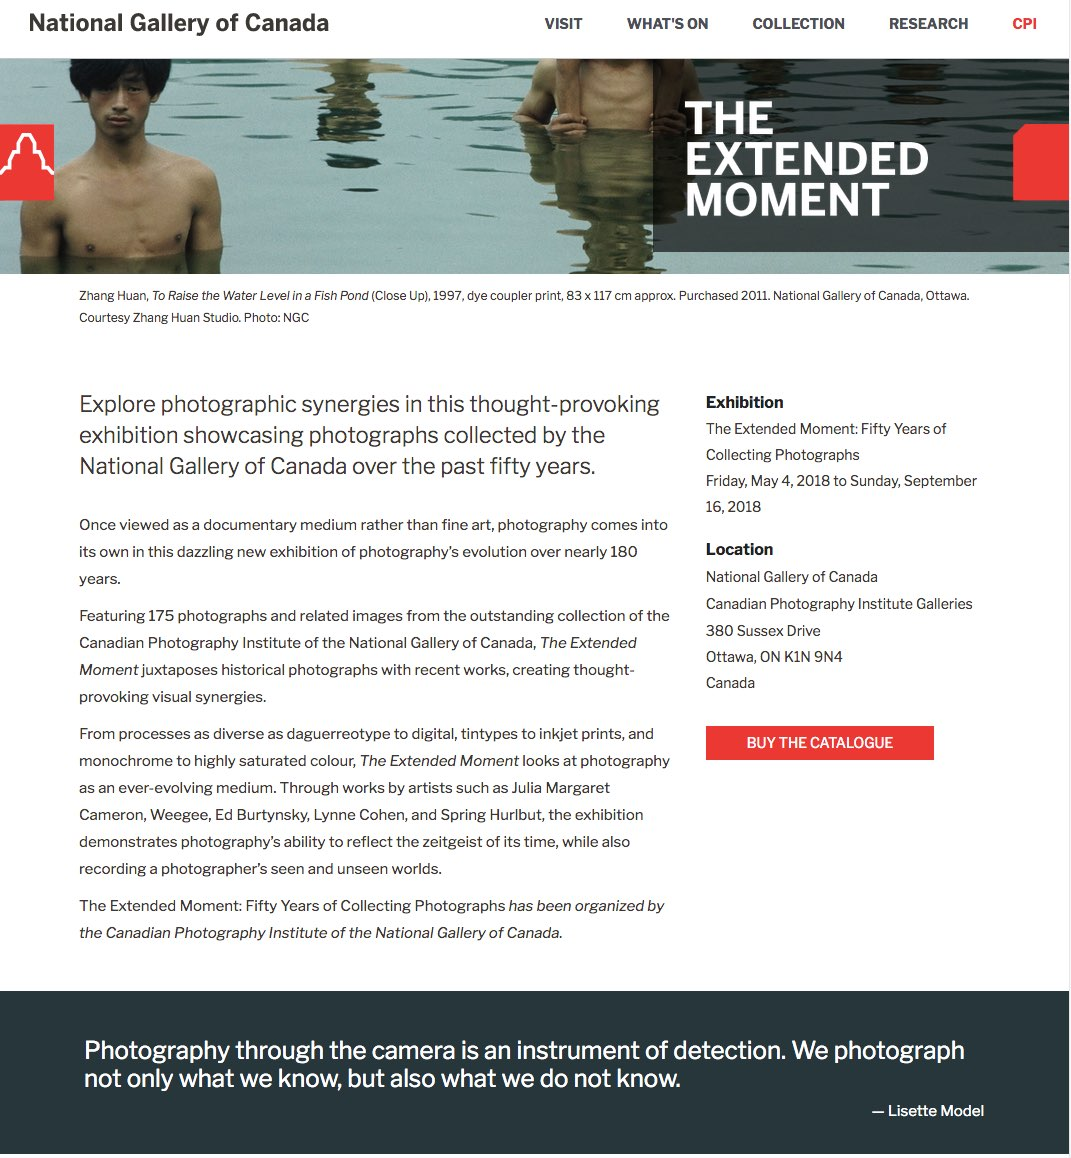 The Extended Moment_ Fifty Years of Collecting Photographs | National Gallery of Canada.jpg